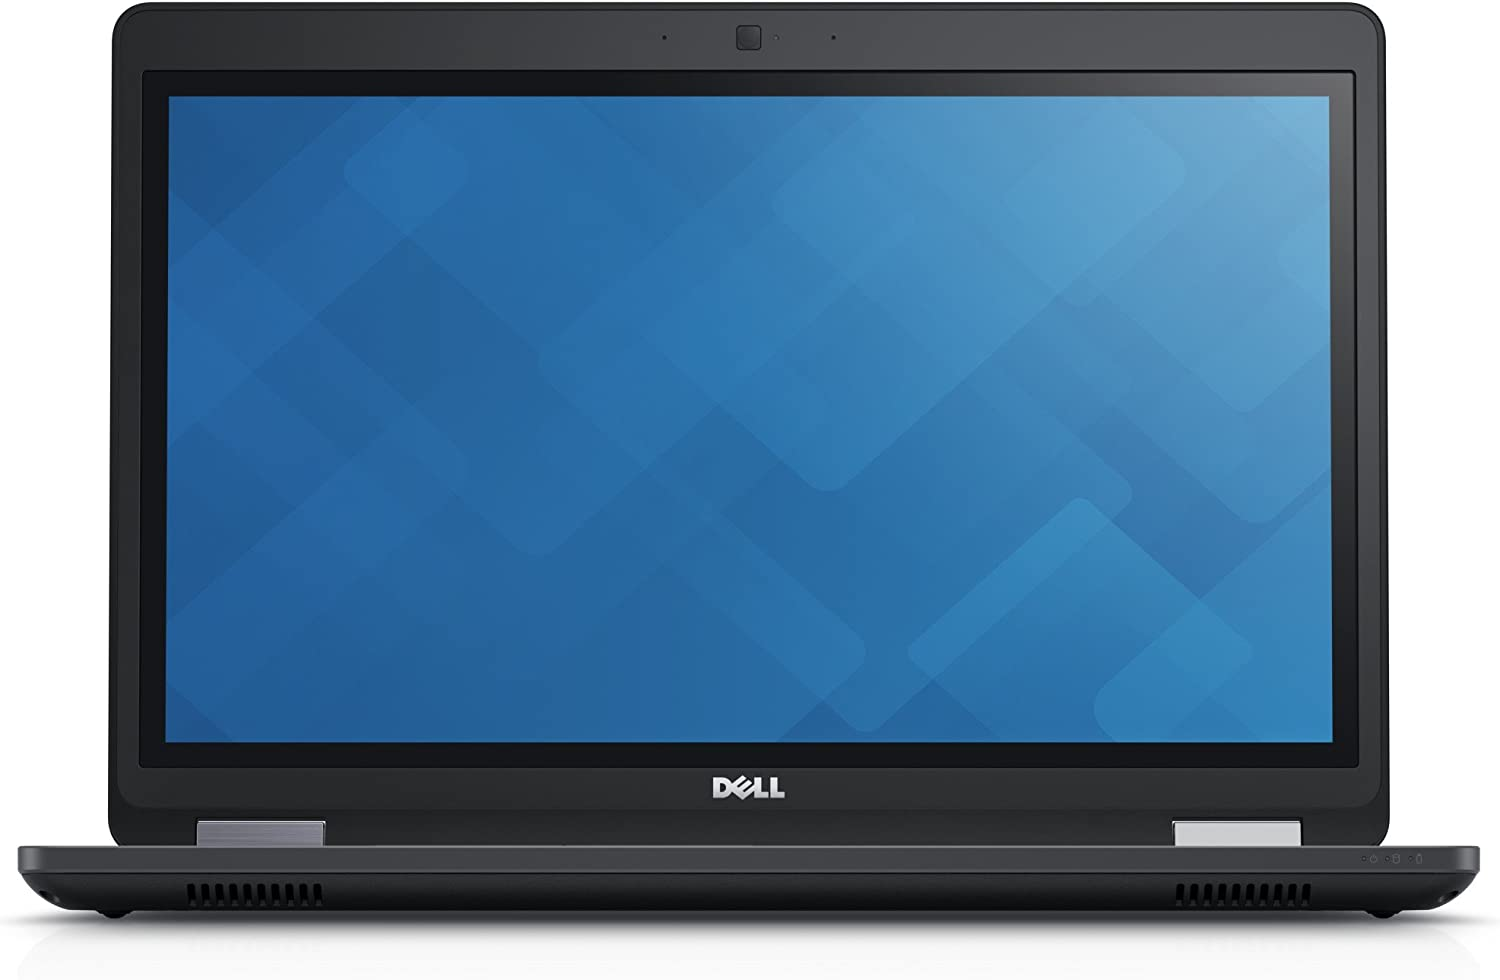 Dell Precision M7710 17.3 INCH FHD 1080P Intel Core i7-6820HQ 32GB 512GB SSD AMD FirePro W5170M Windows 10 Professional (Renewed)